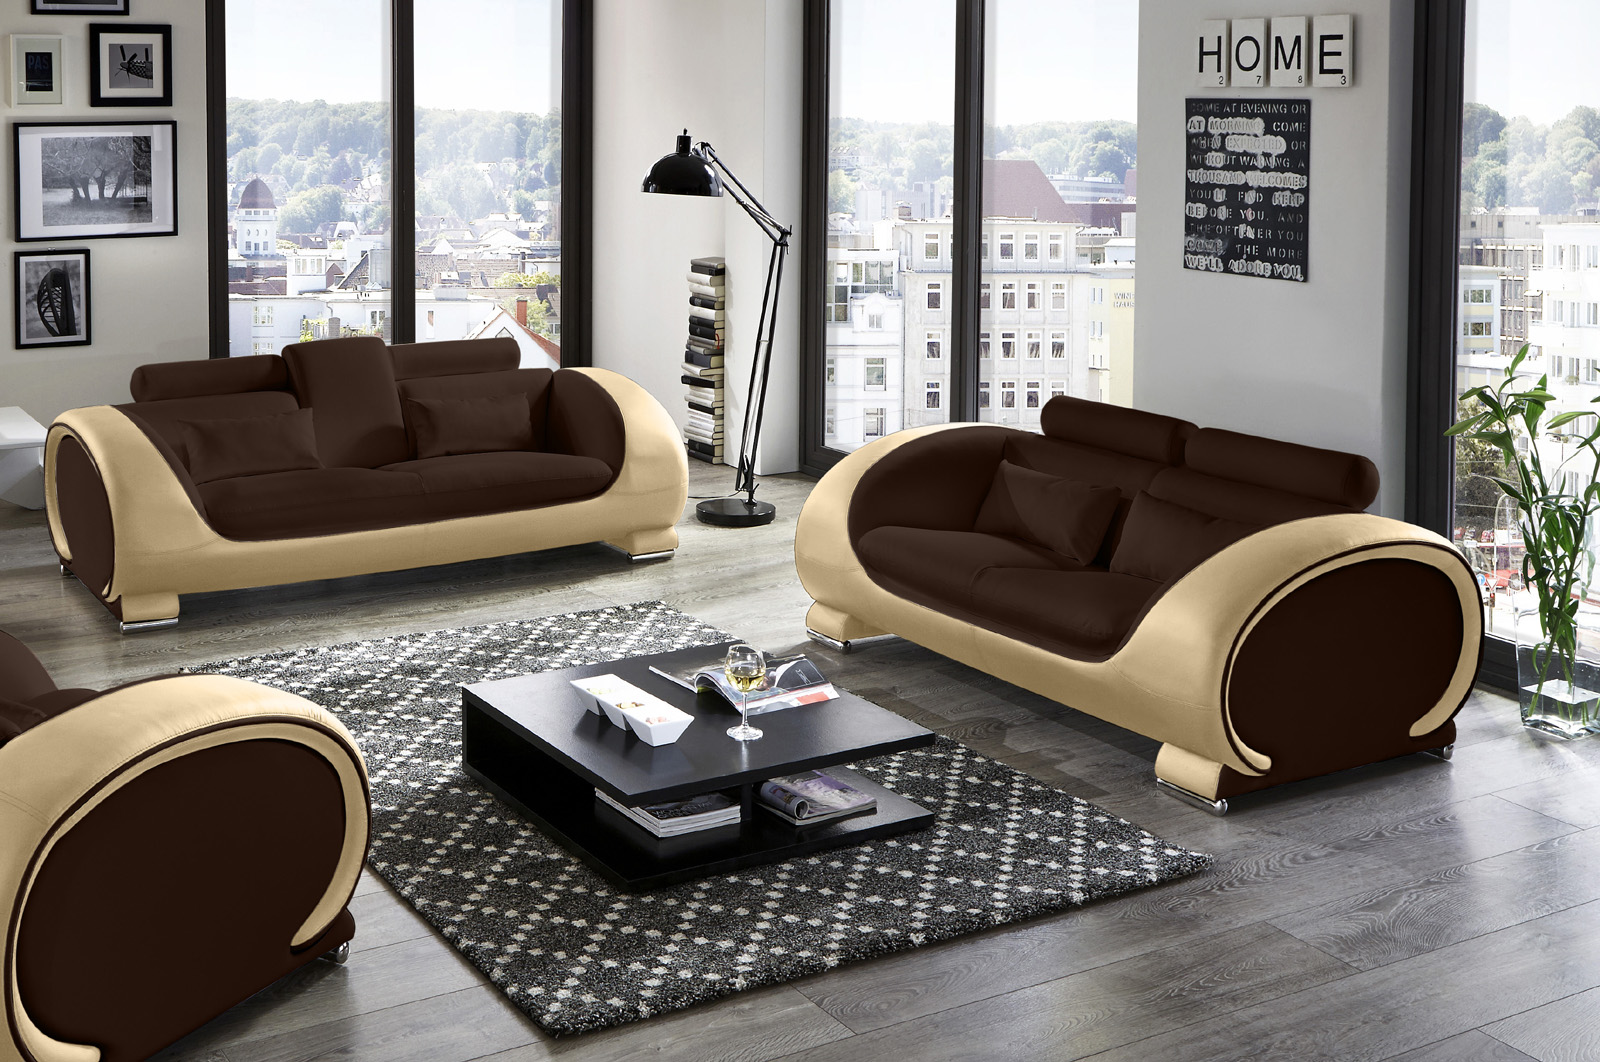 sam 2 3 sitzer sofa garnitur 2tlg in braun creme vigo auf lager. Black Bedroom Furniture Sets. Home Design Ideas